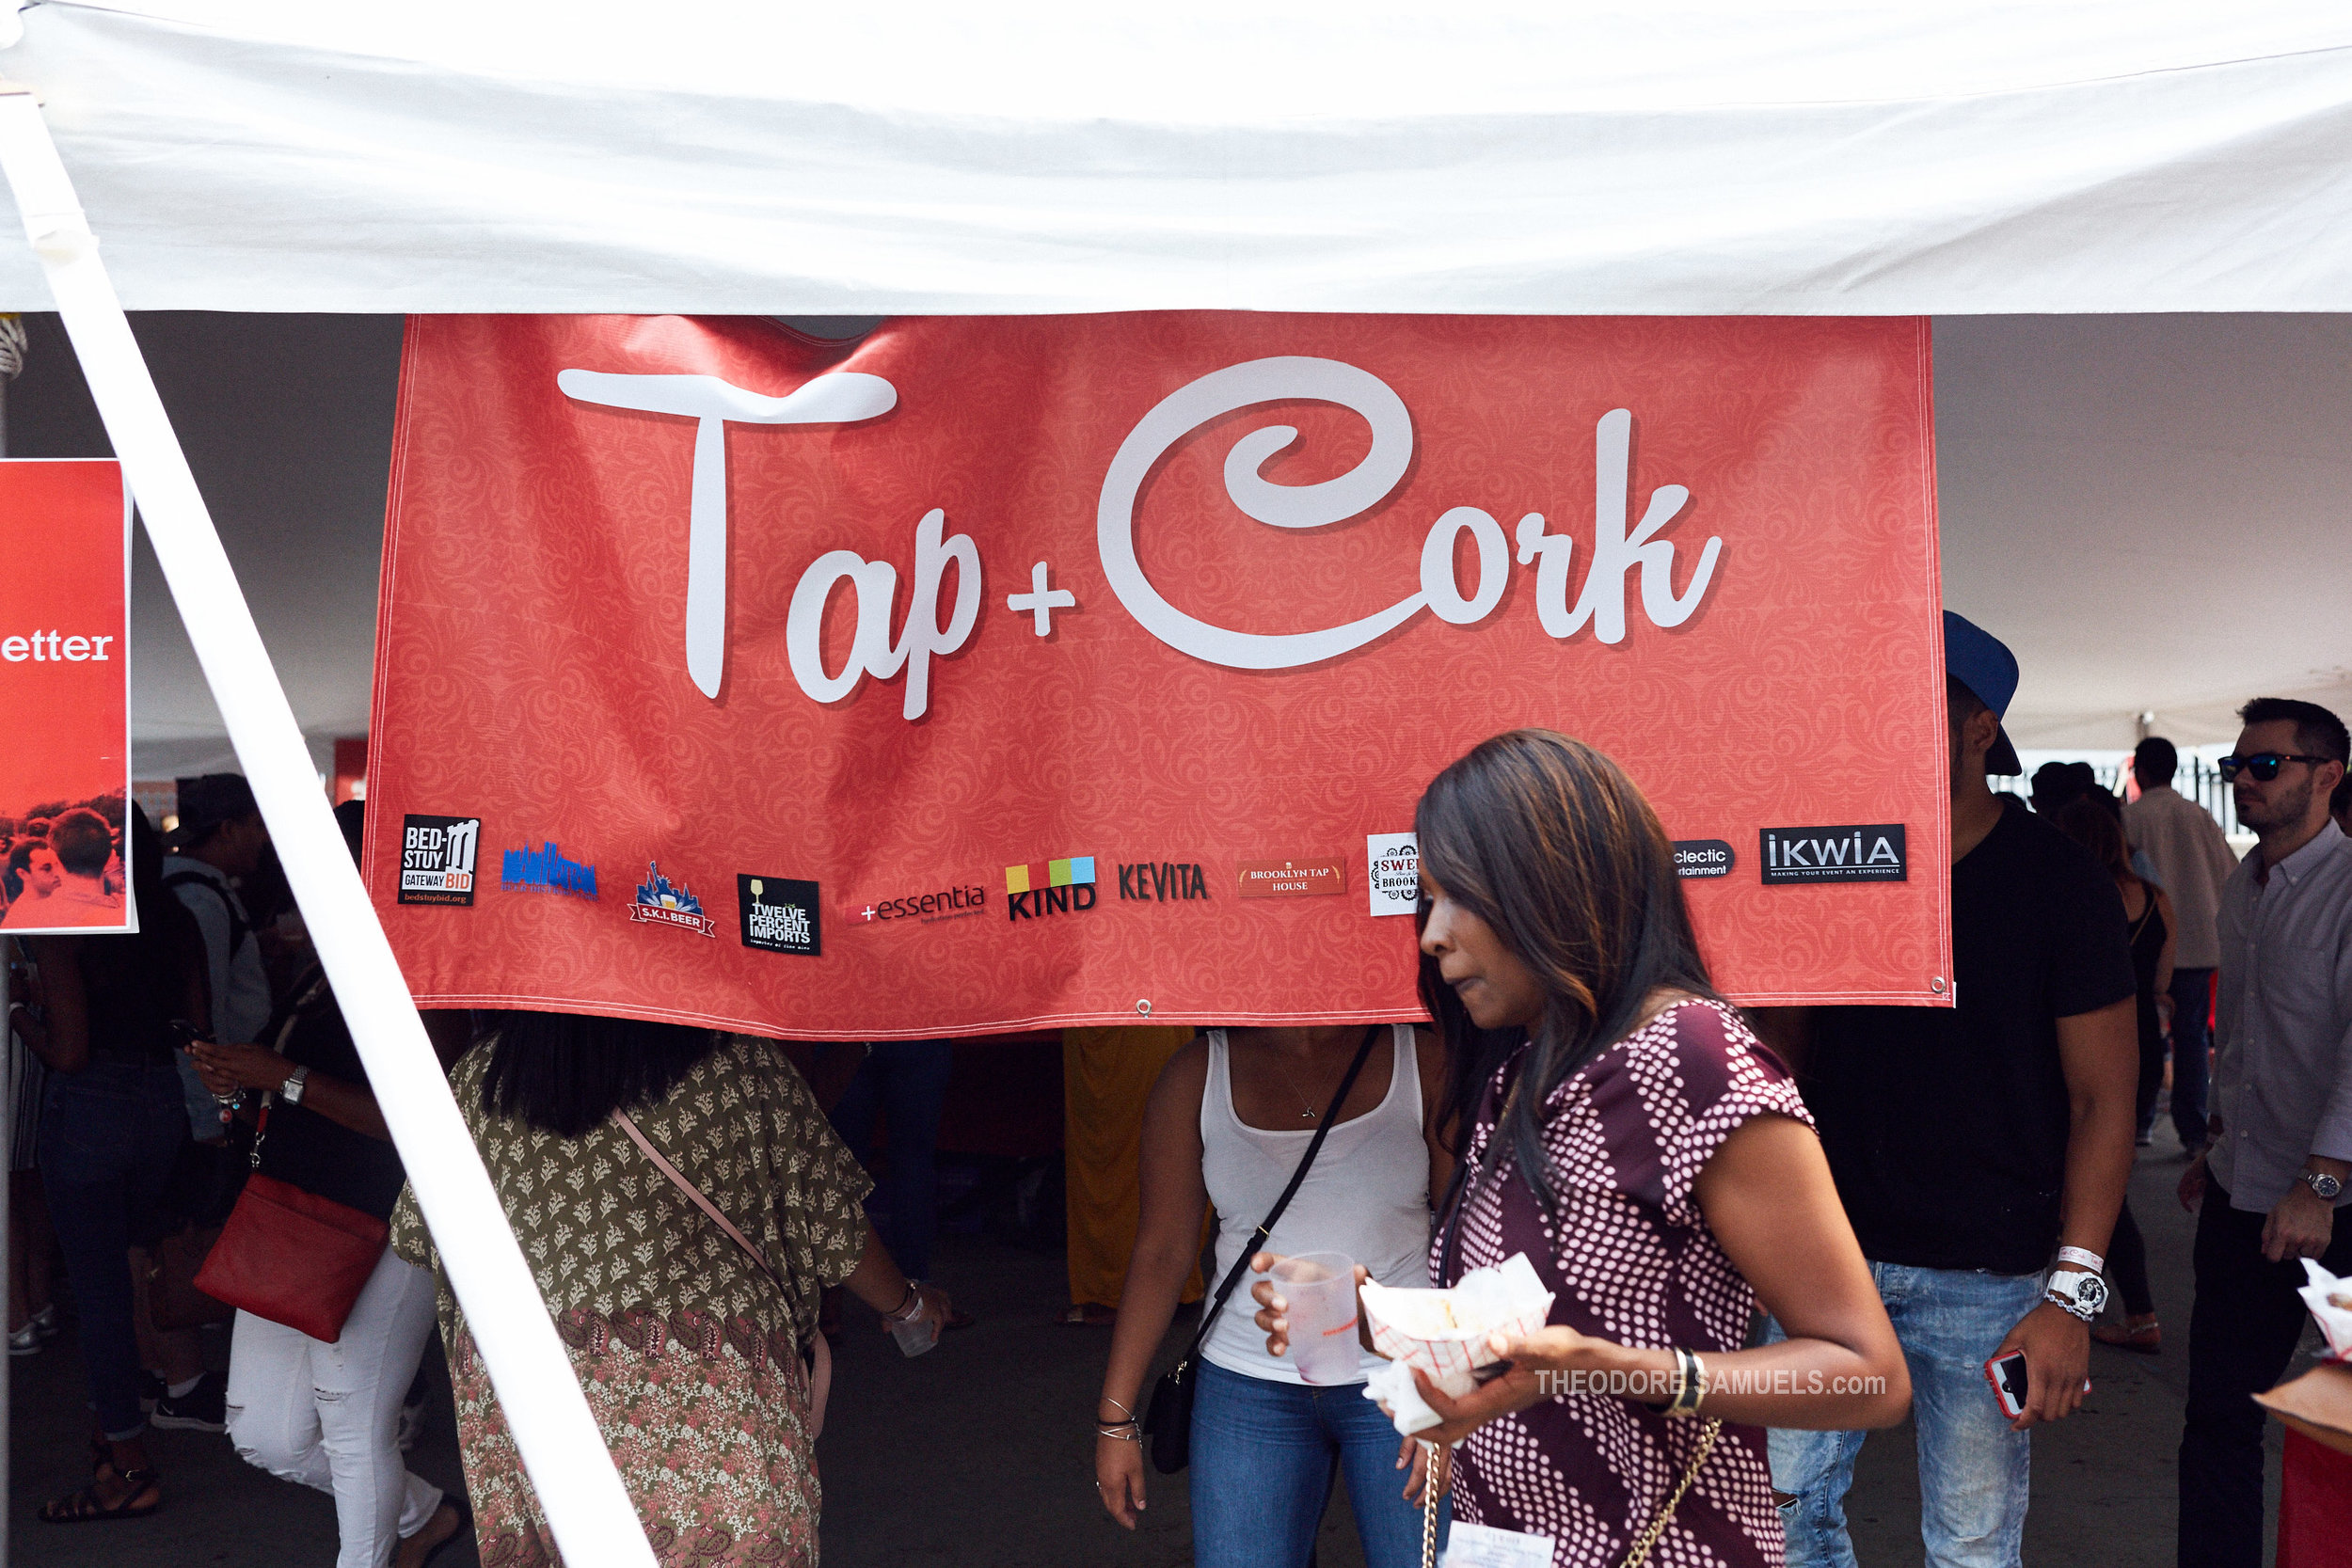 Tap and Cork_032.jpg